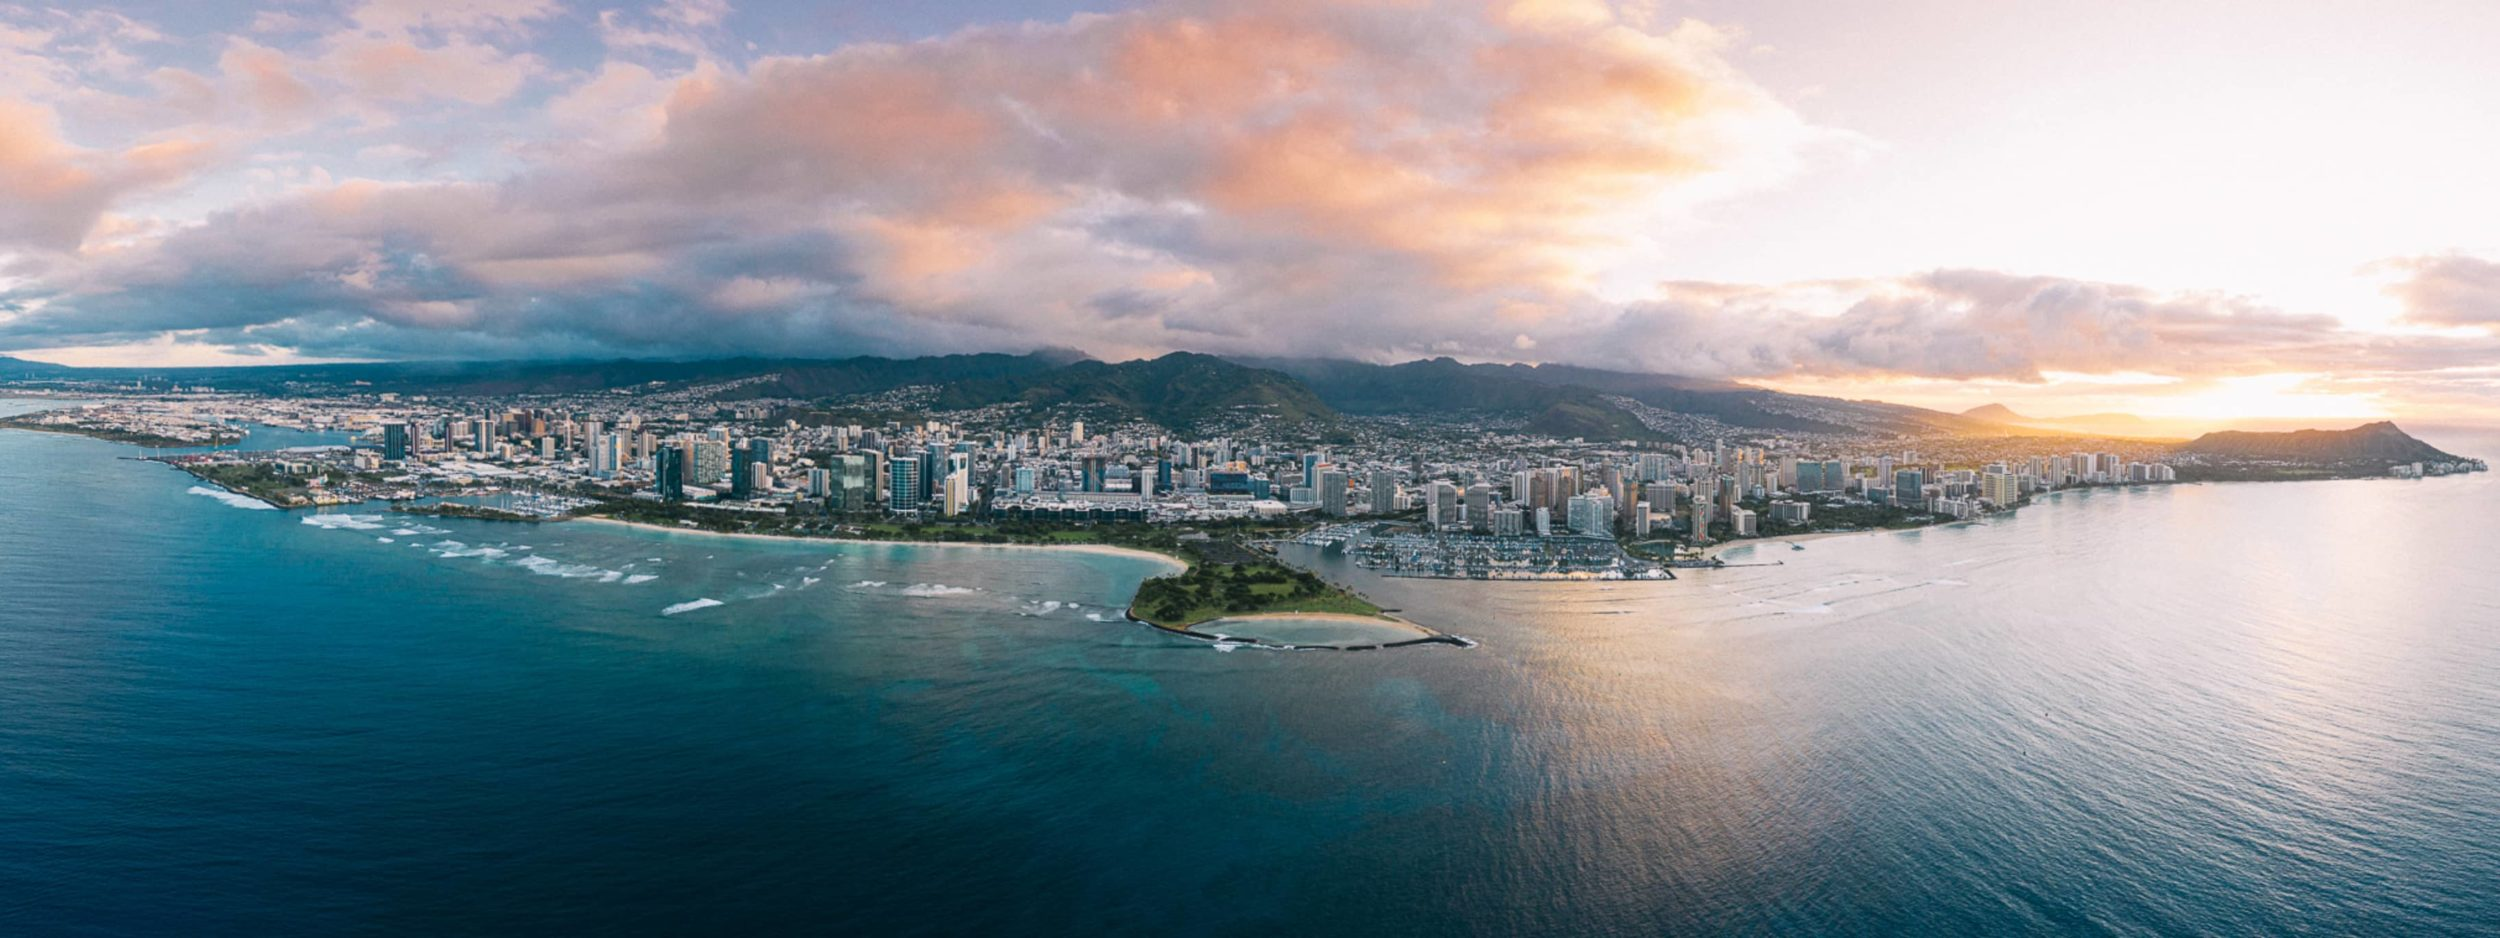 Aerial photo of Honolulu with ocean, mountains, and buildings